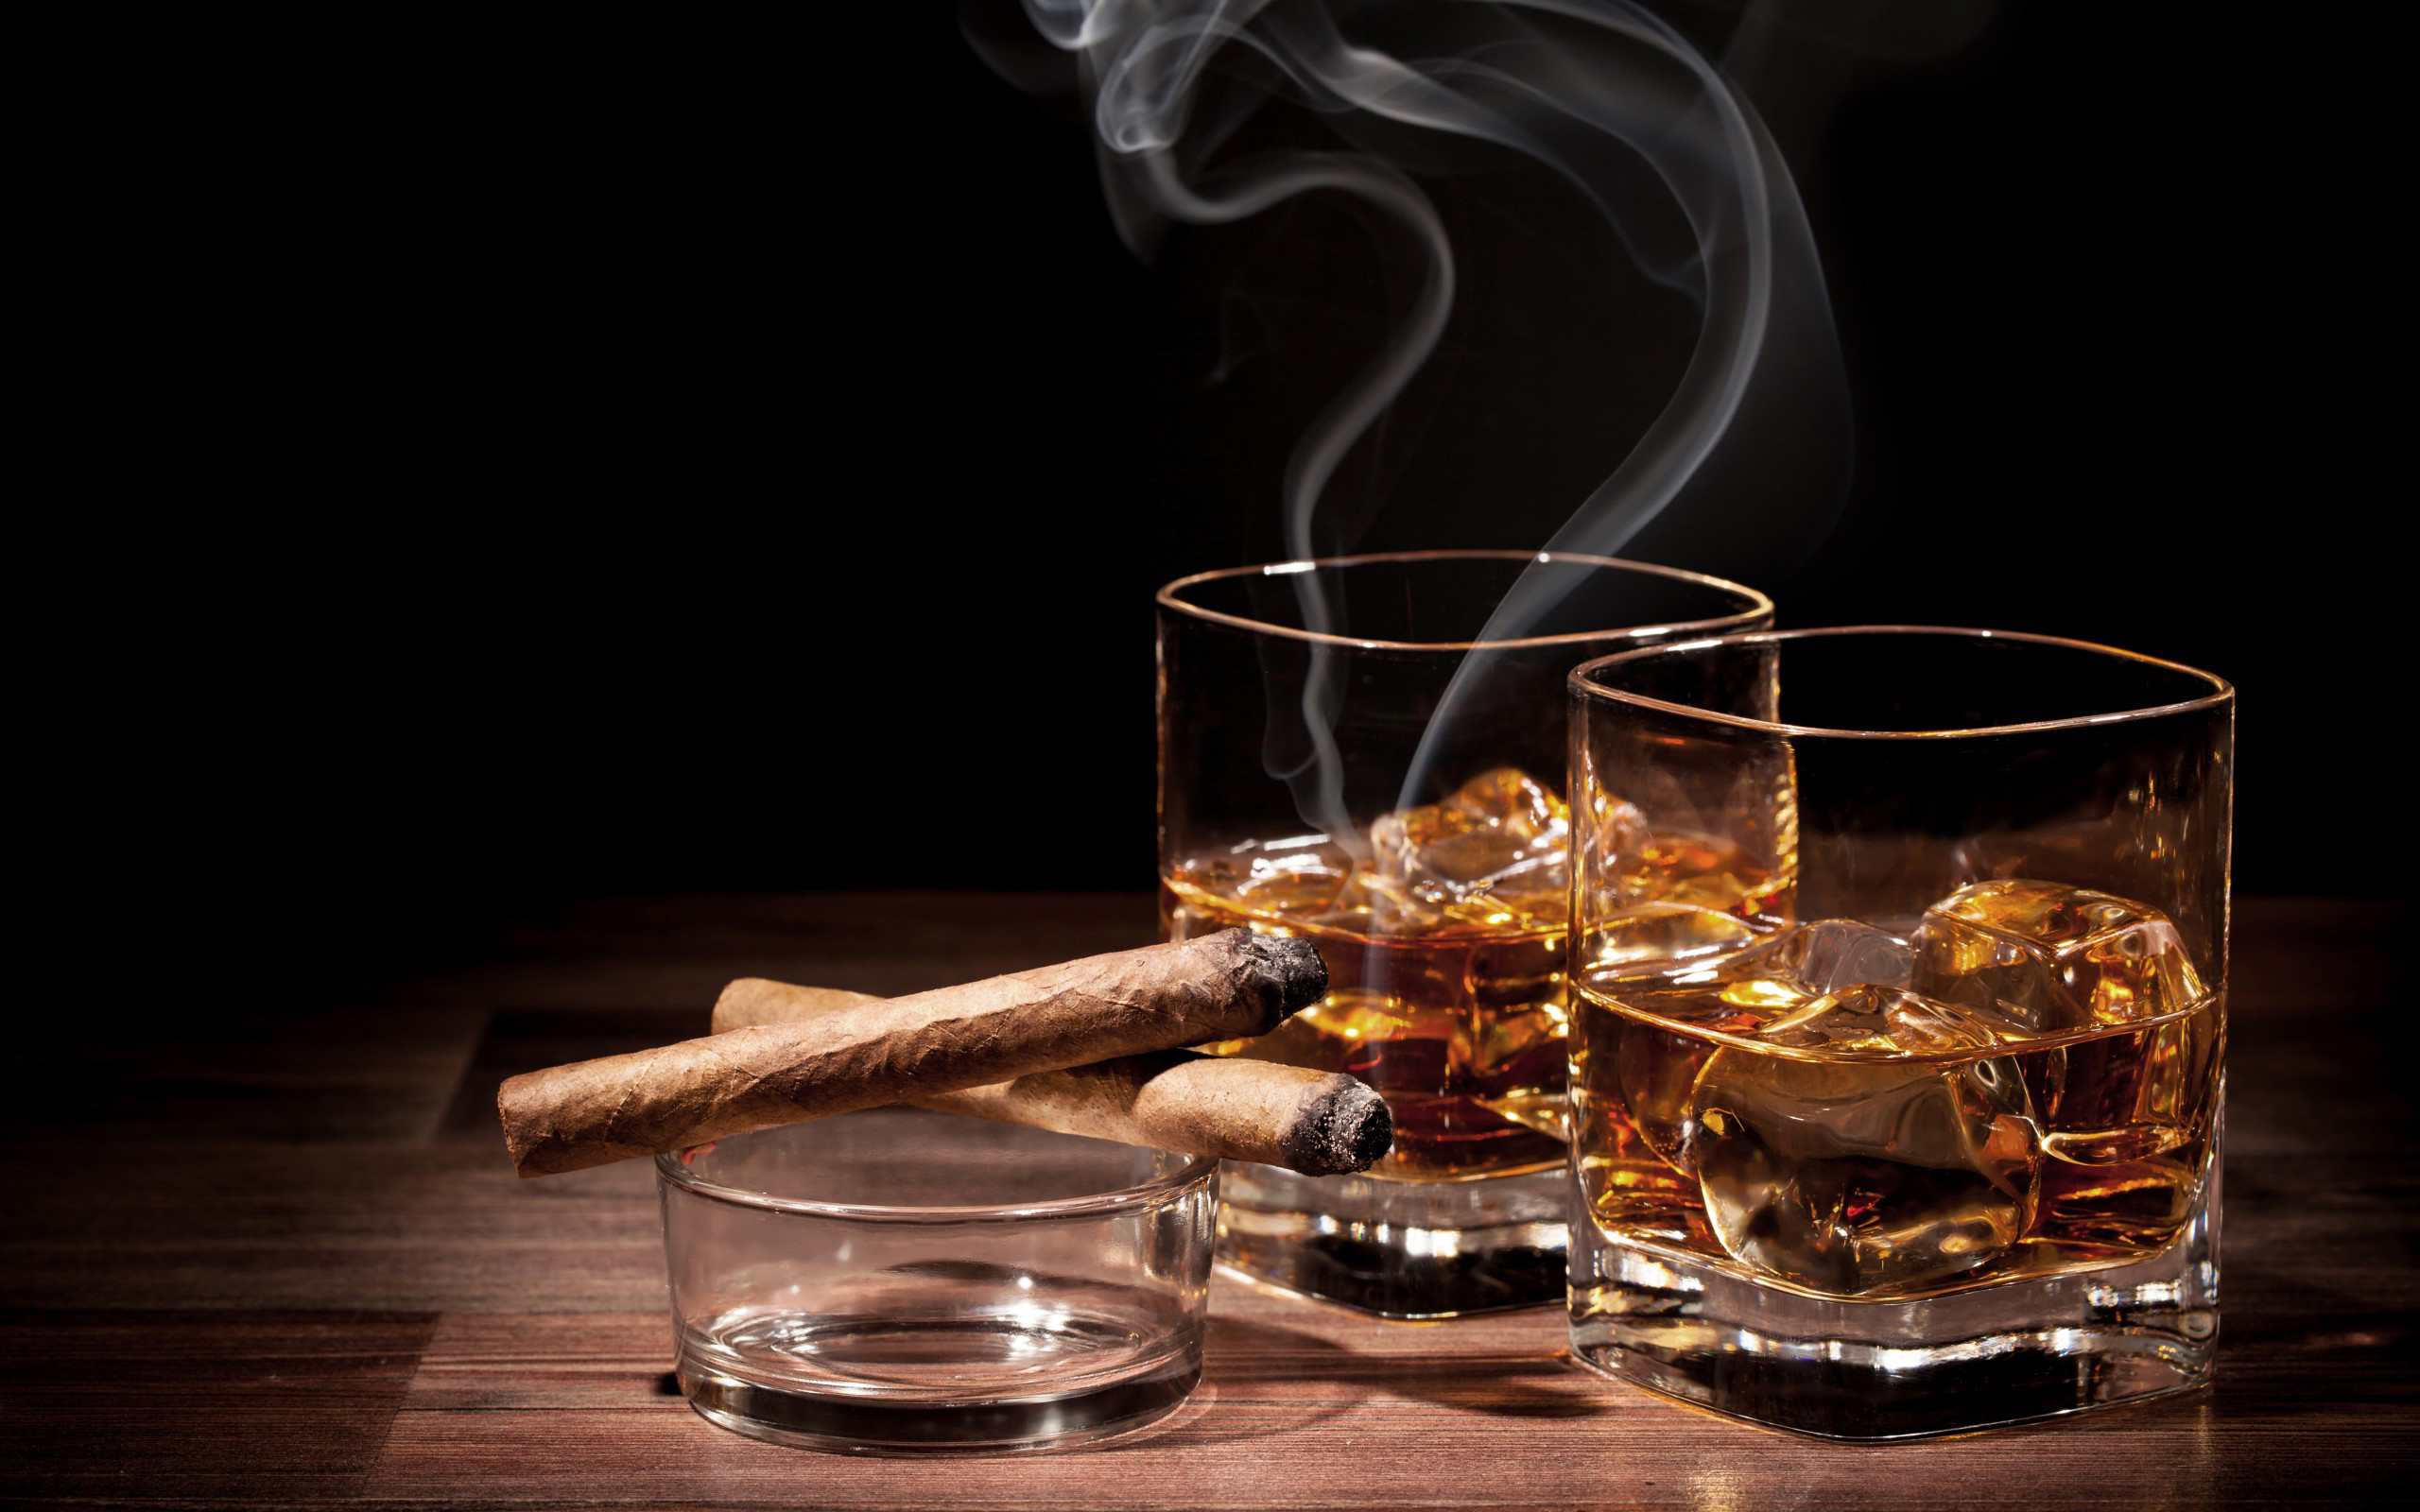 Manly Fall Wallpaper Cigars And Whiskey Wallpaper Gallery Yopriceville High